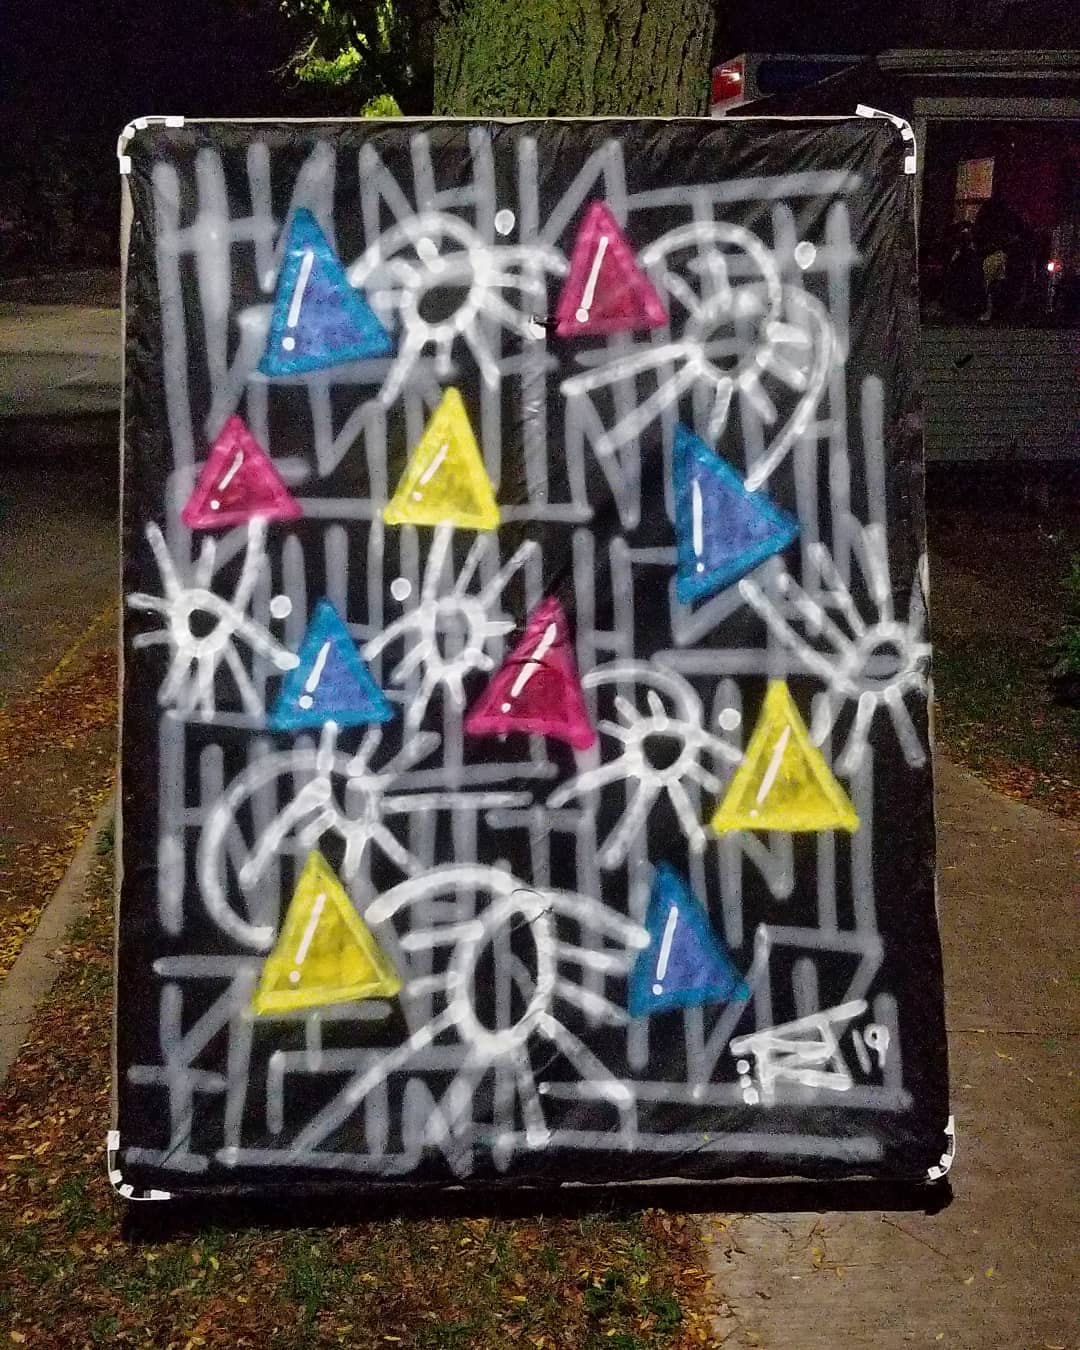 Image contains street art outdoors on box spring